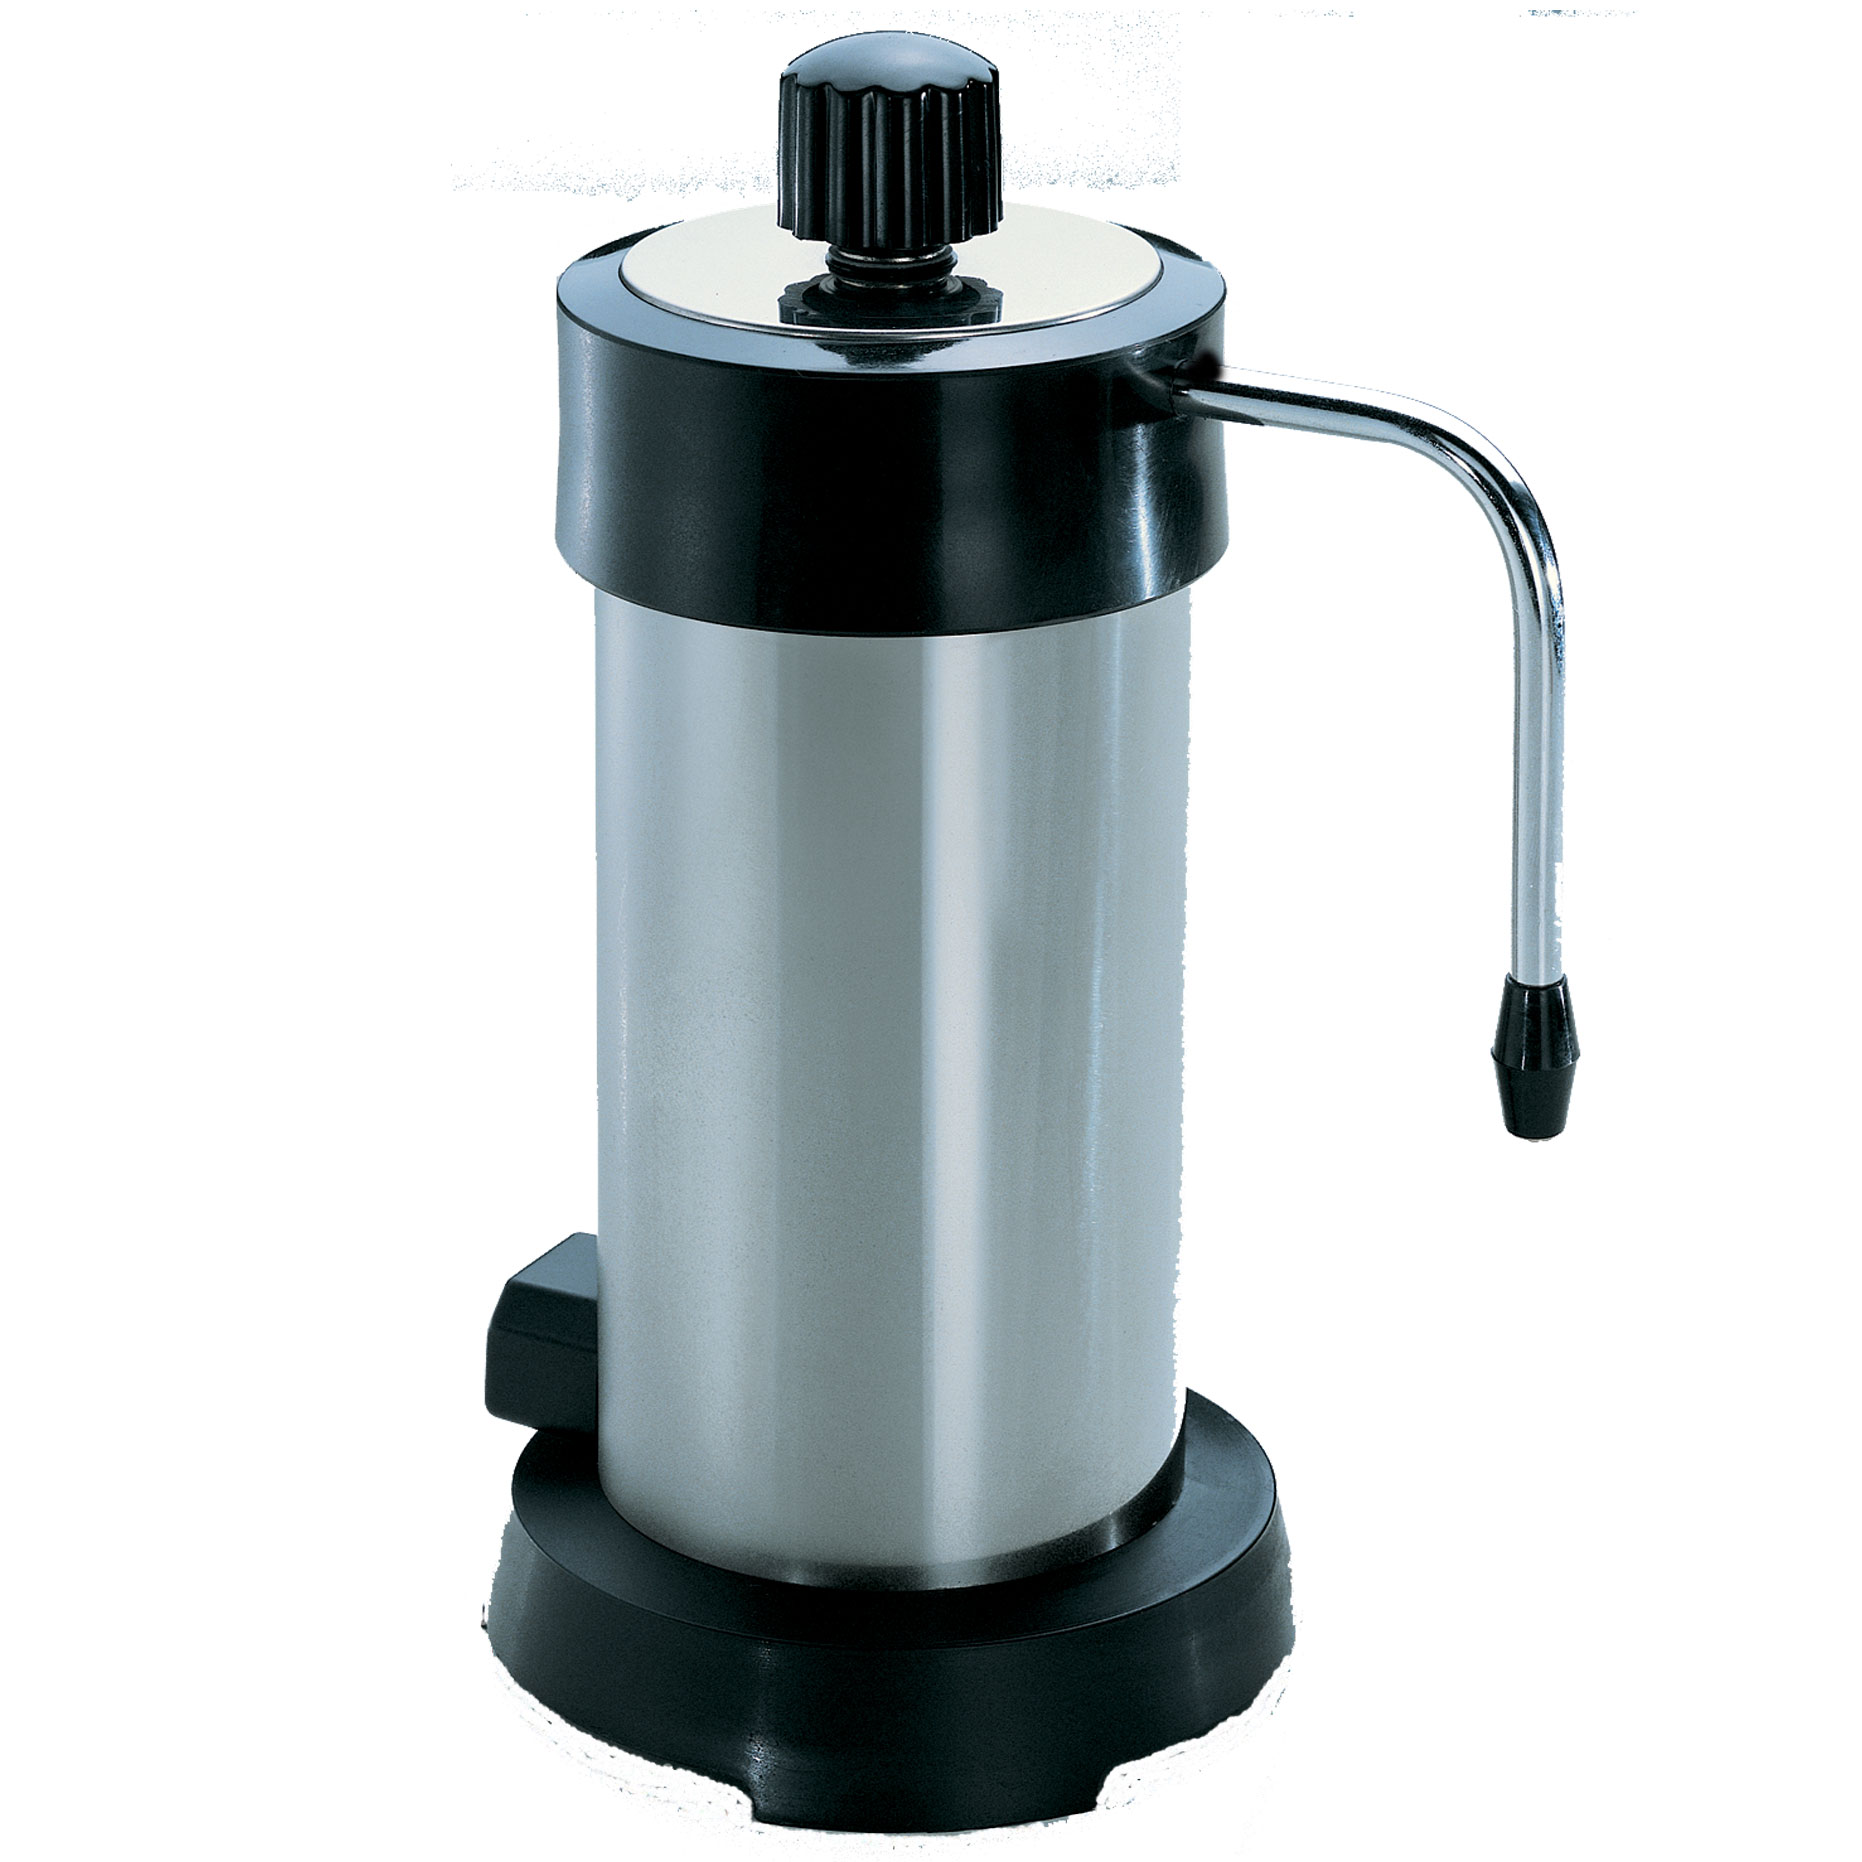 Plastic Free Coffee Maker Electric : Electric coffee maker 4 cups - Coffee Machines - Electro - Italia76